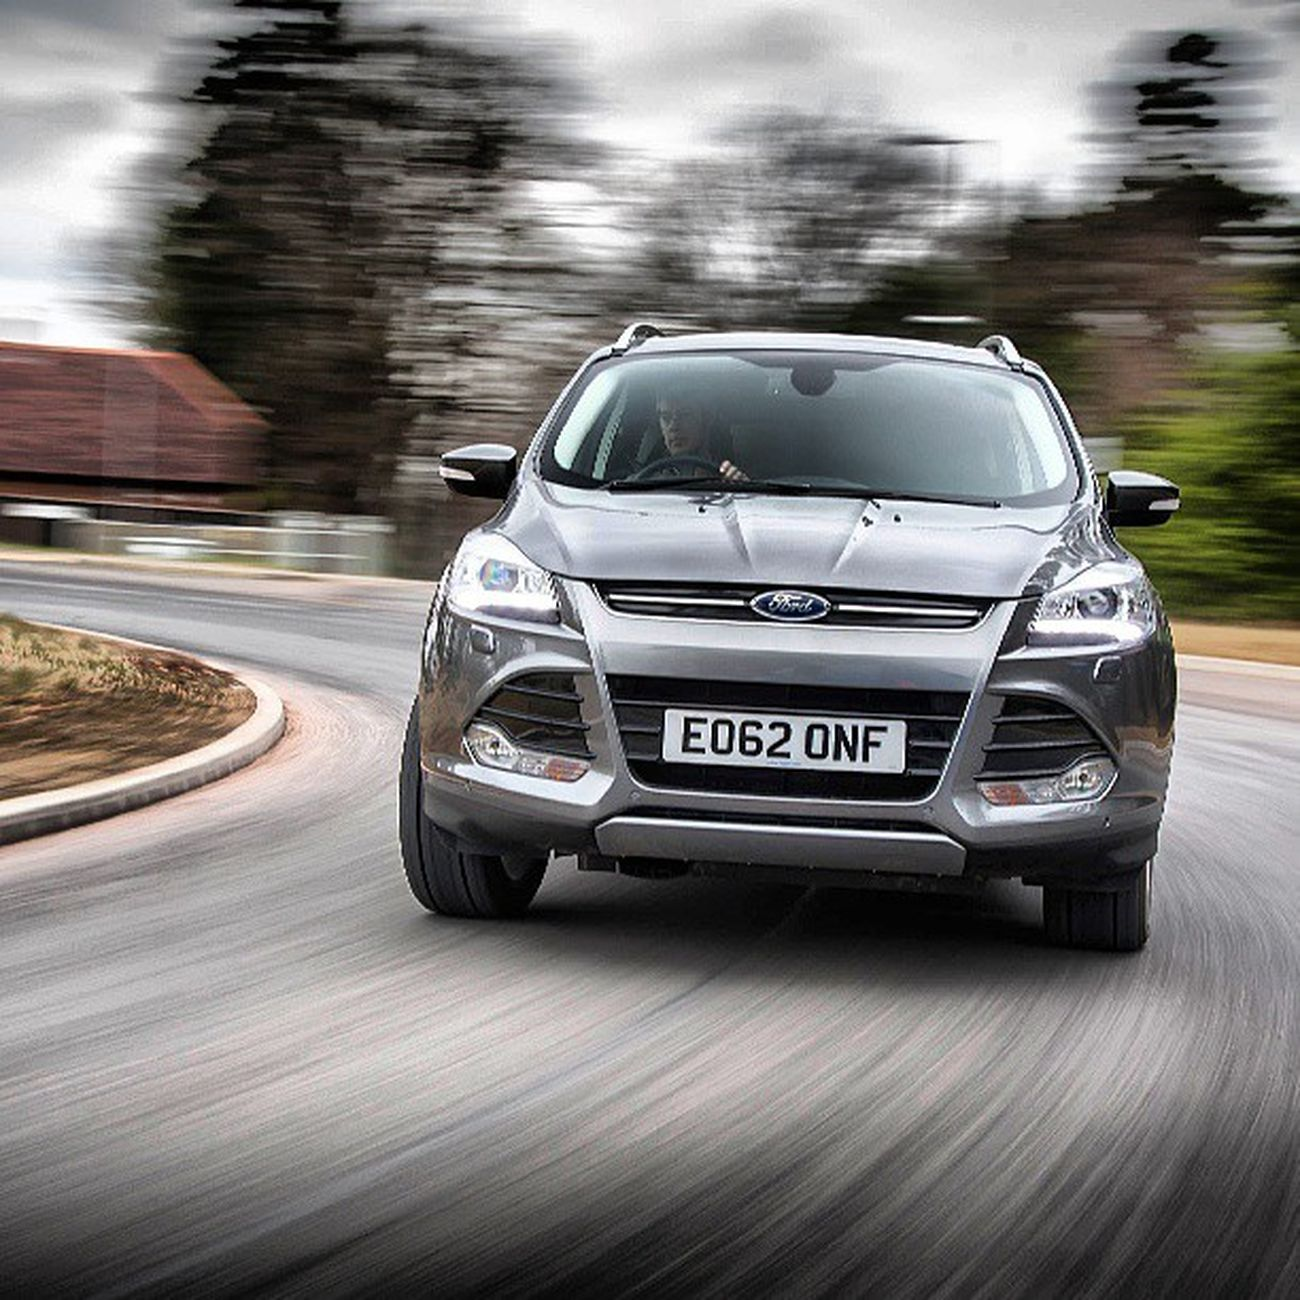 Try the Smart Drive Experience with Ford Kuga Kugadrive Ibi13 FordSocialHub SUV Rome Igers Igersroma Tennis Cars Road New Cool Tech Technology